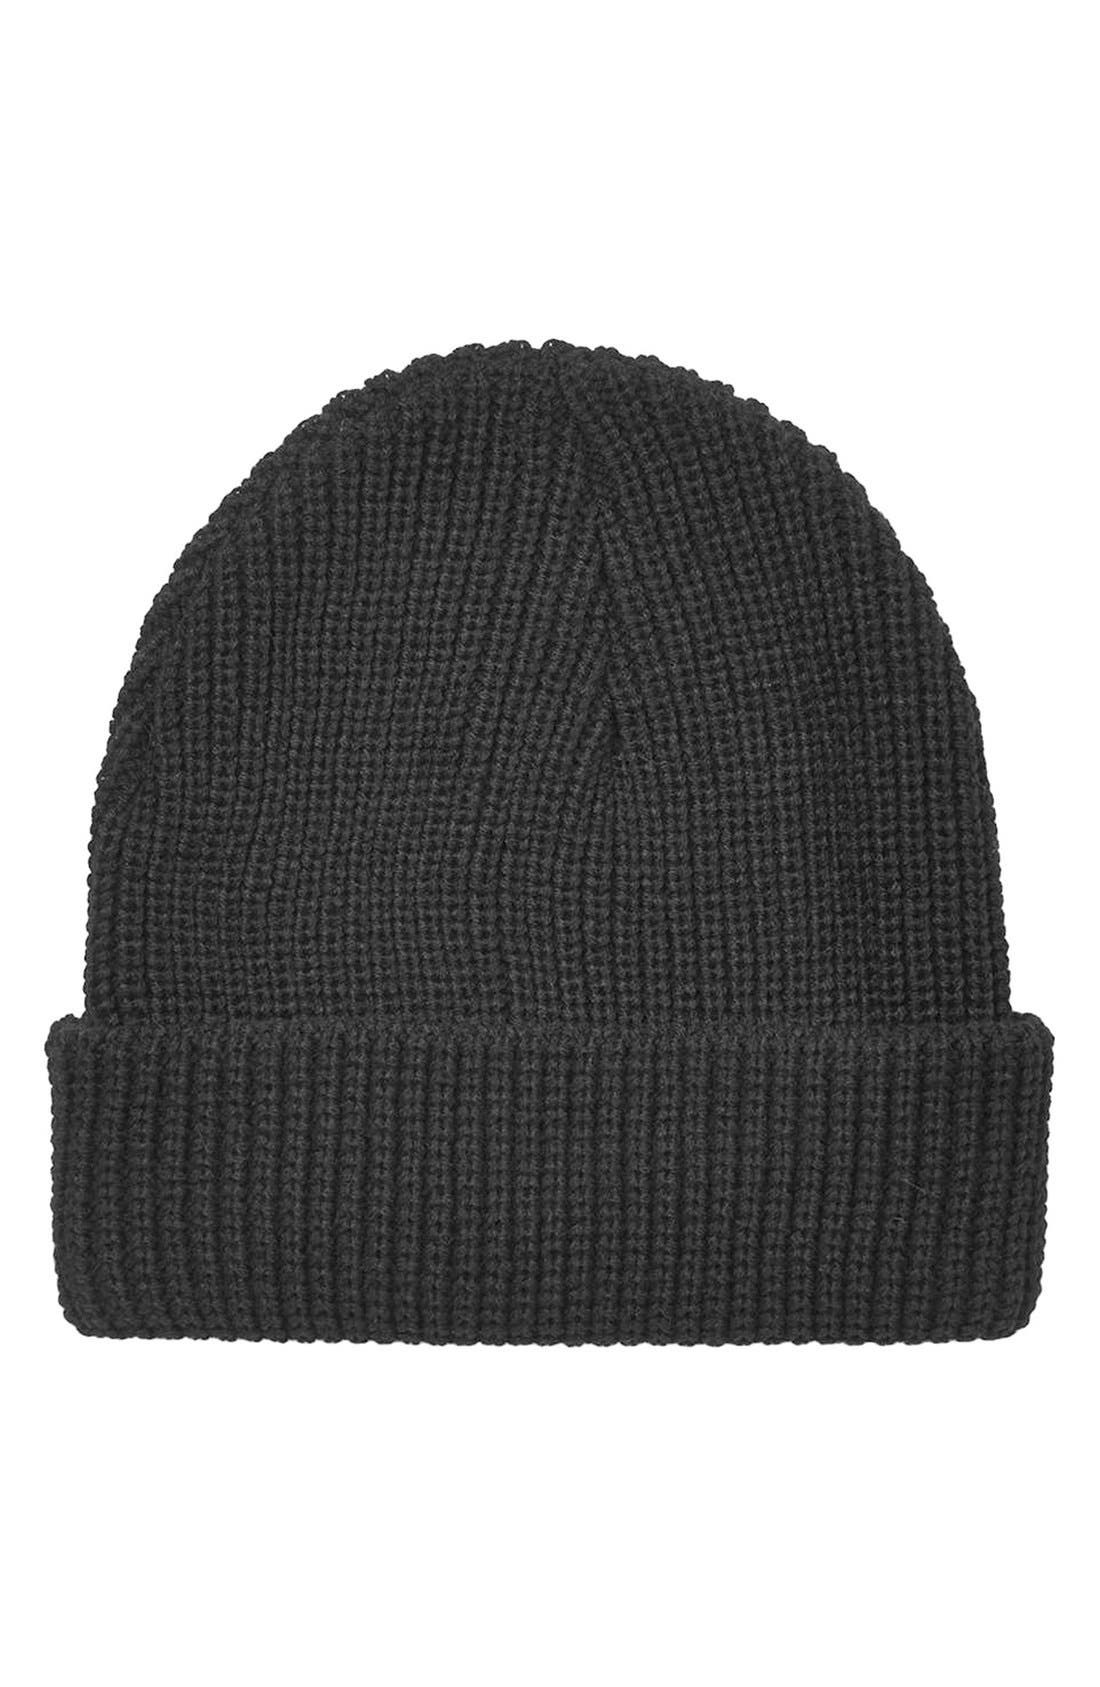 Alternate Image 1 Selected - Topshop Slouchy Rib Knit Beanie